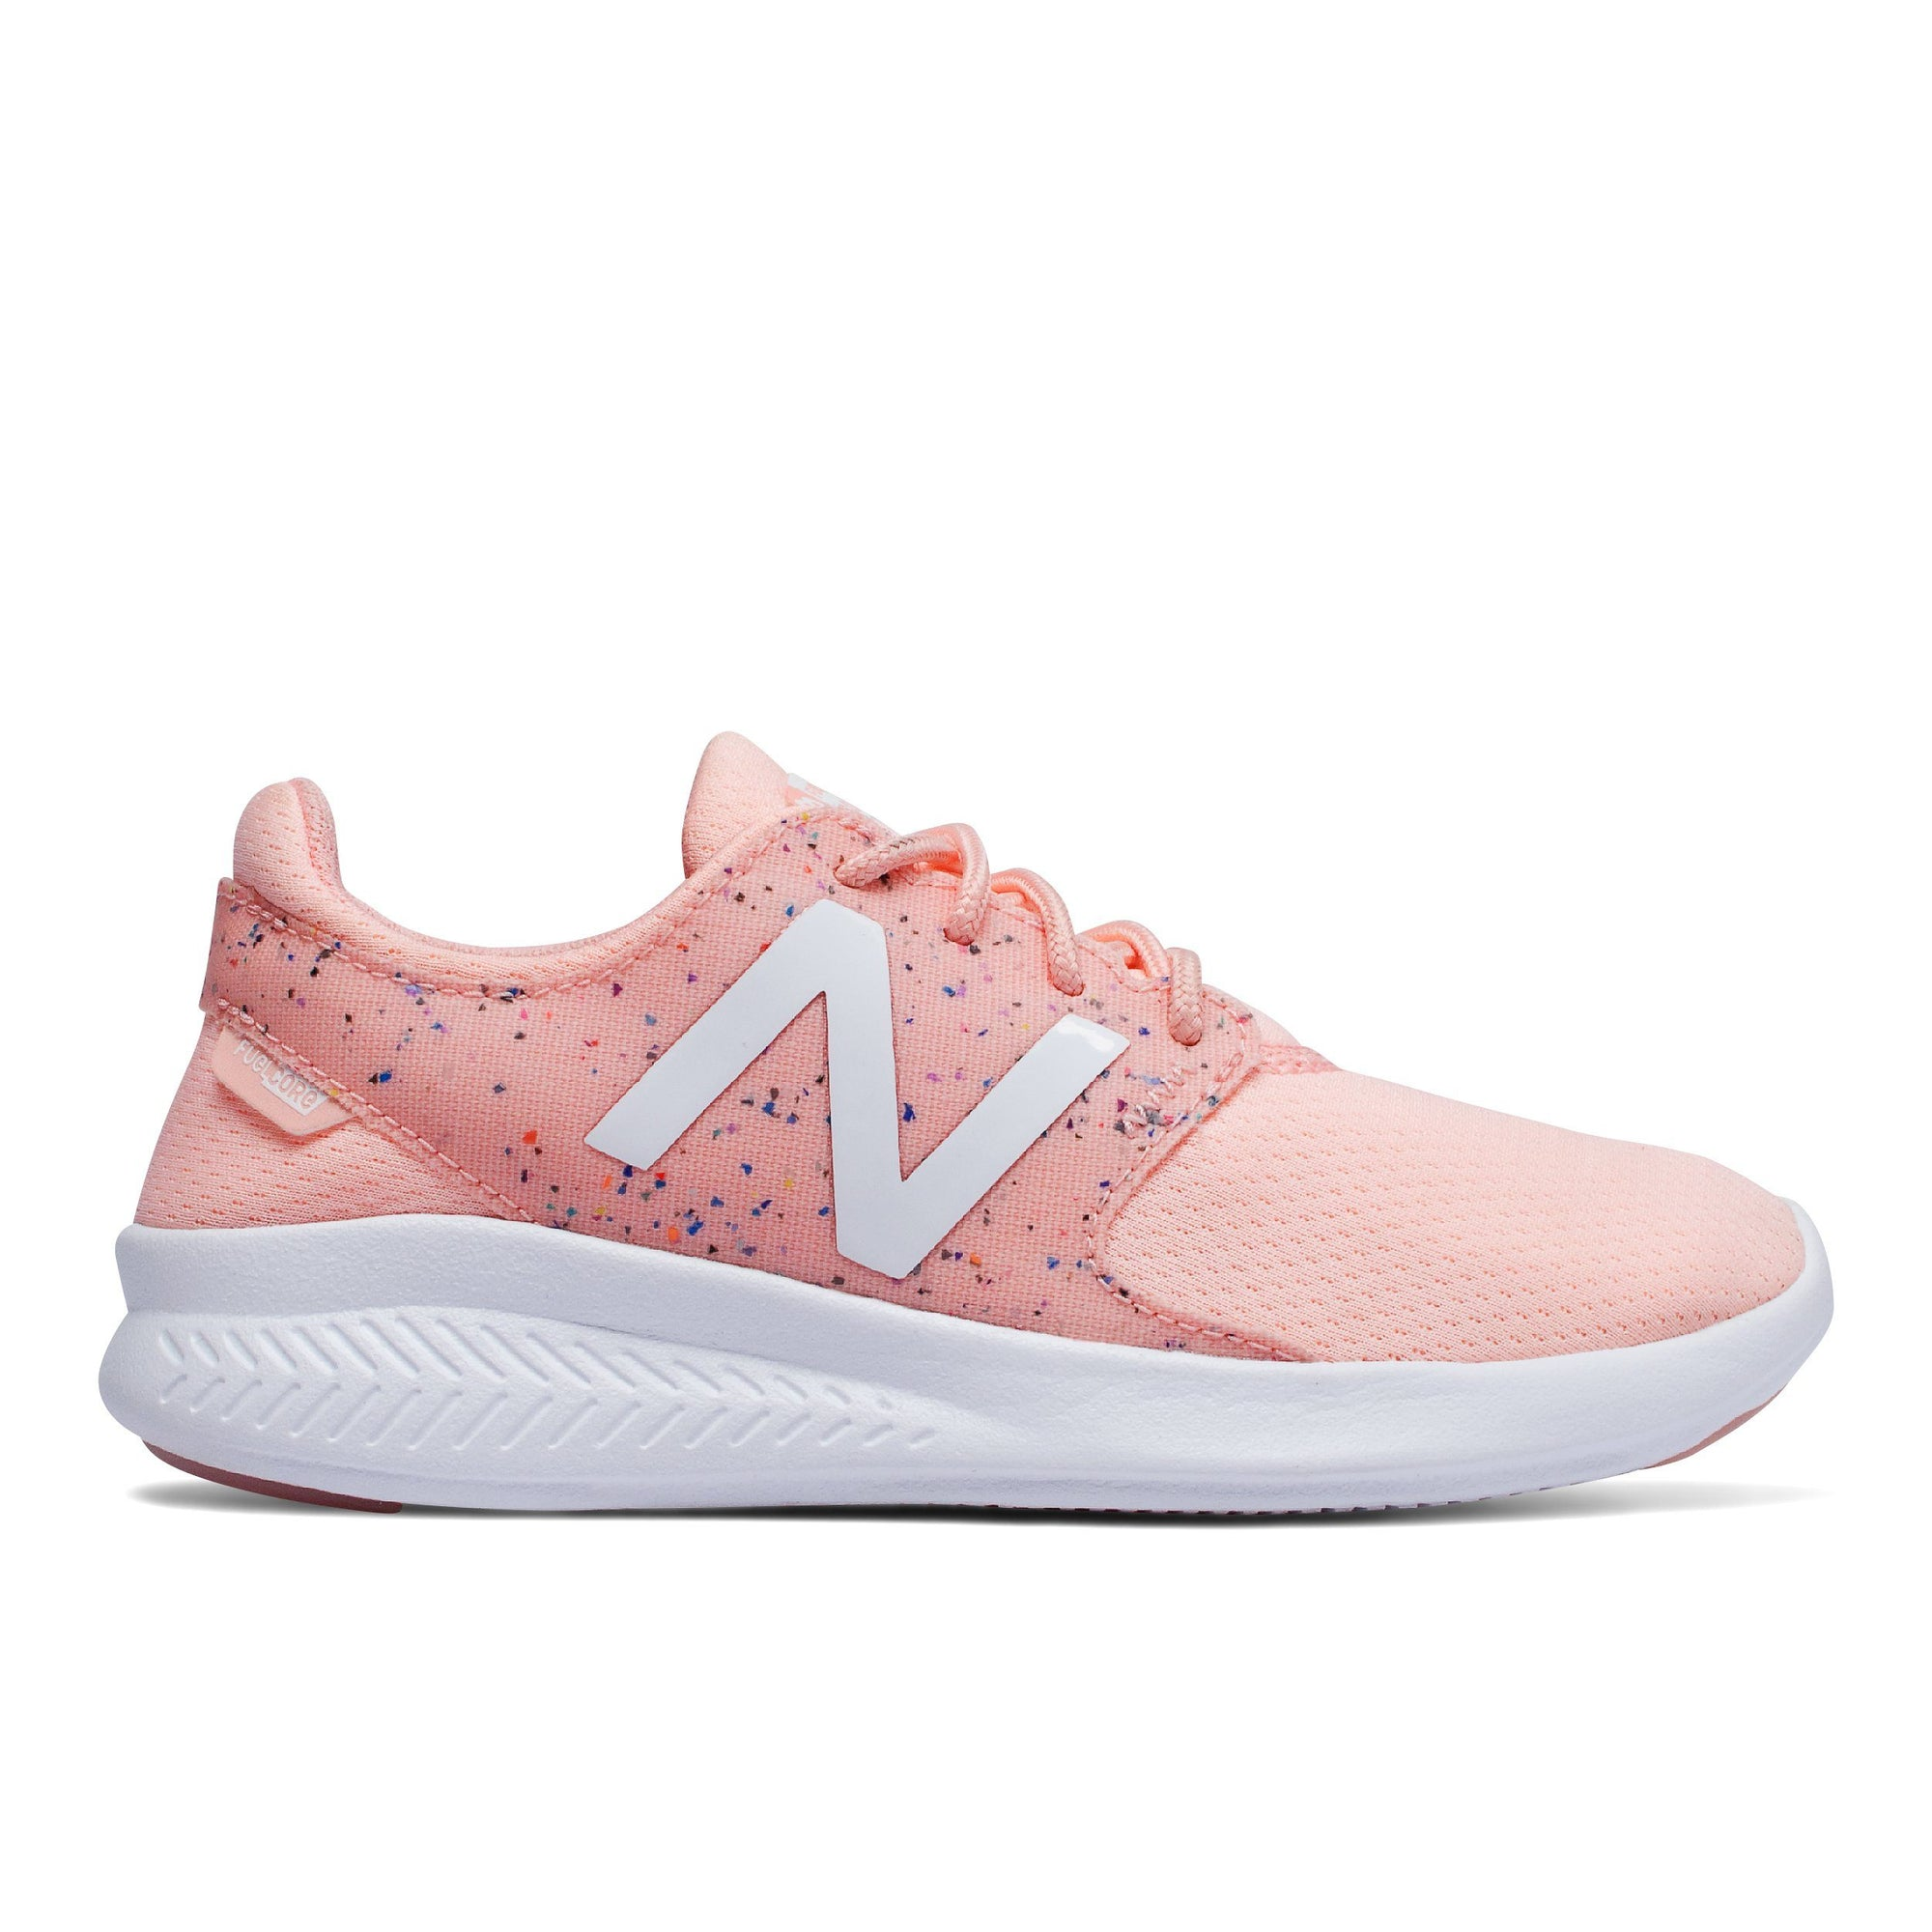 New Balance Kids FuelCore Coast v3 - Pink Multi SP-Footwear-Kids New Balance